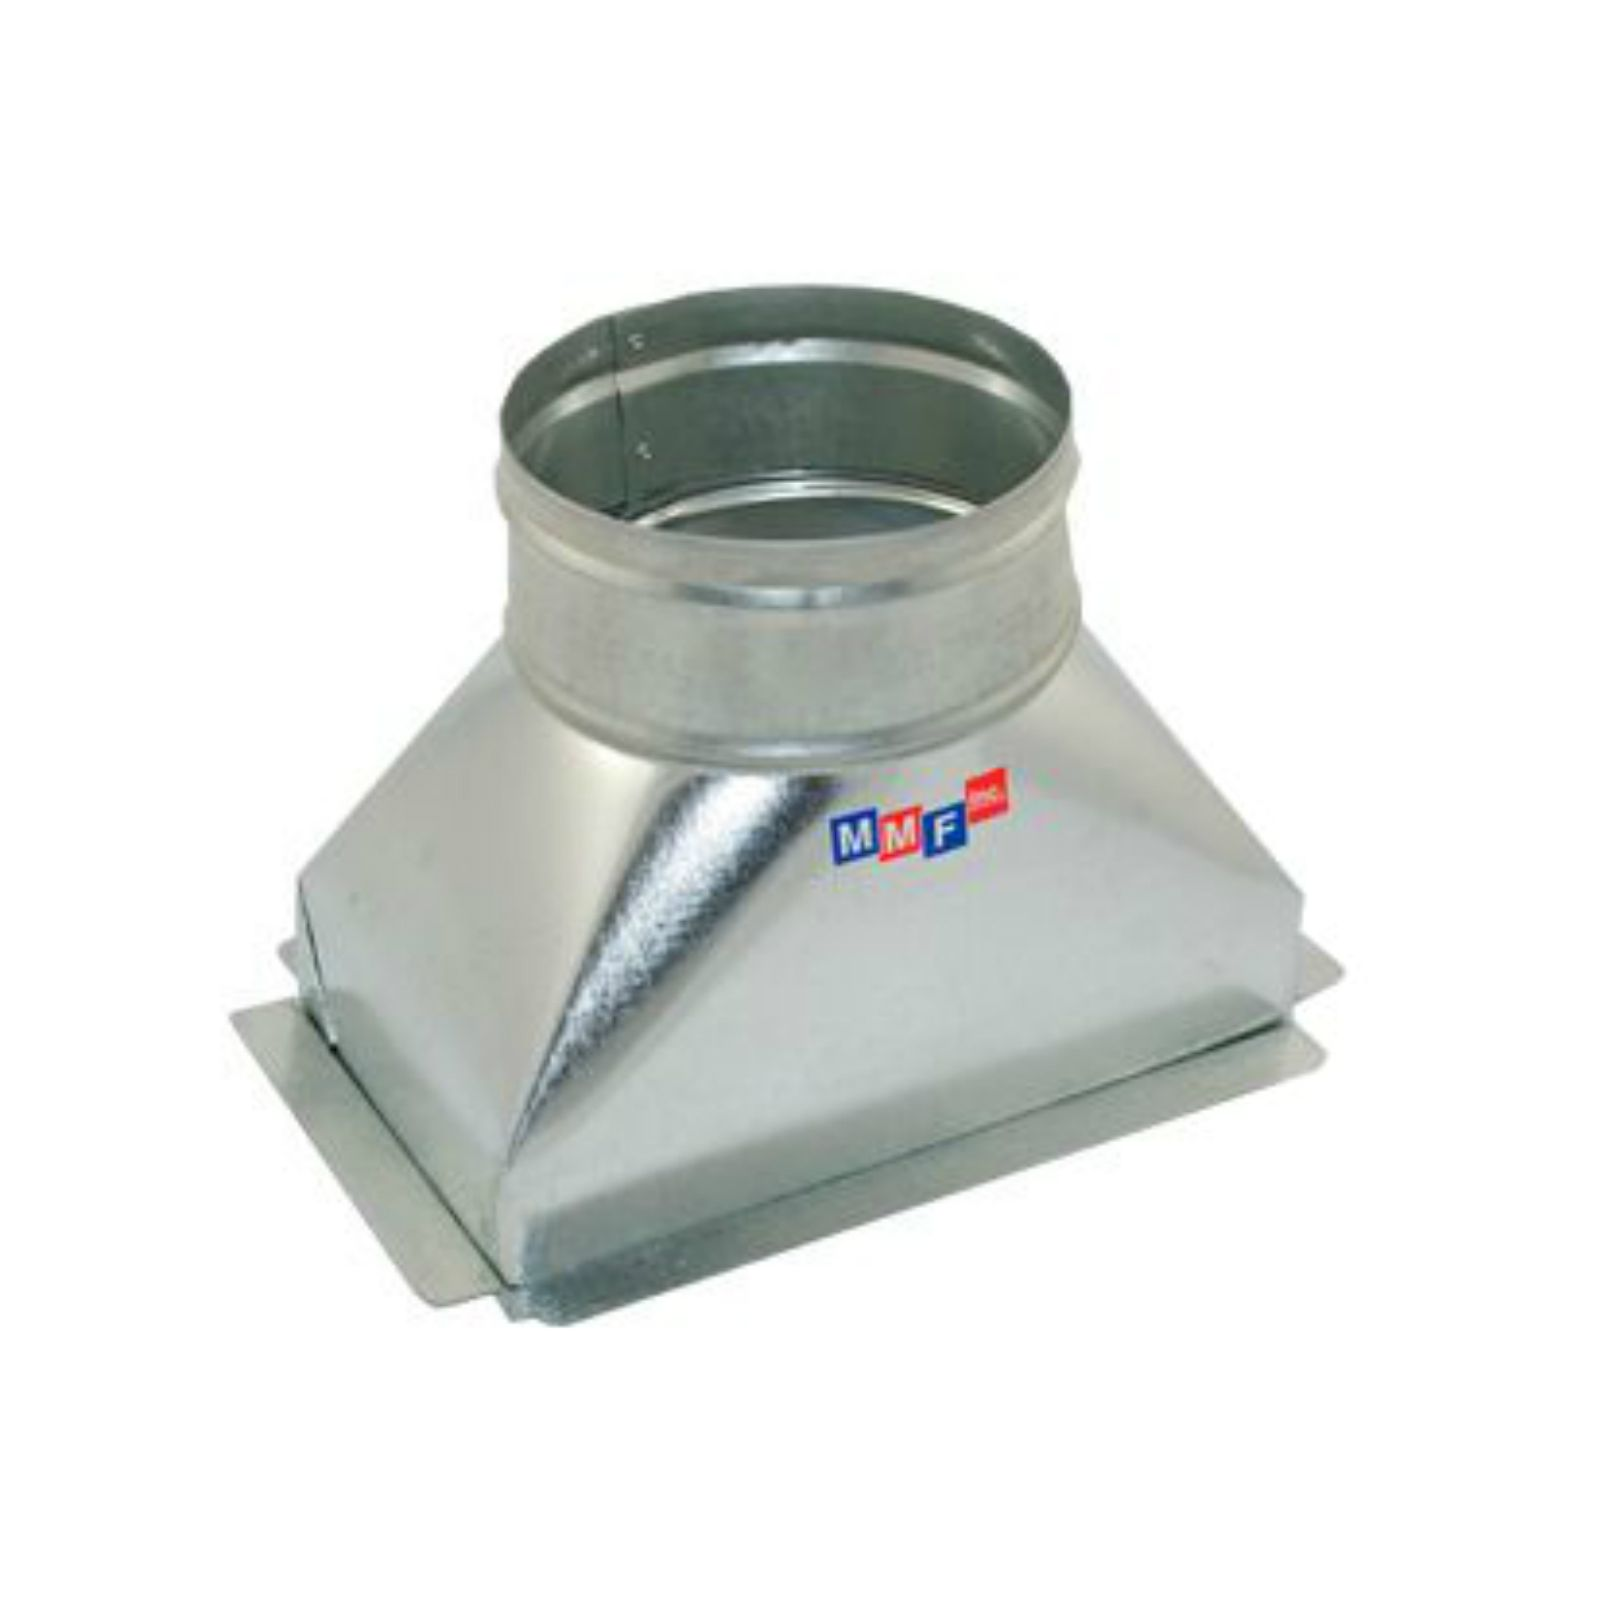 "Modular Metal BTSFG140810P - Sealed Floor Box - 30 Gauge - With Plaster Ground Flange 14"" X 08"" To 10"" Round"